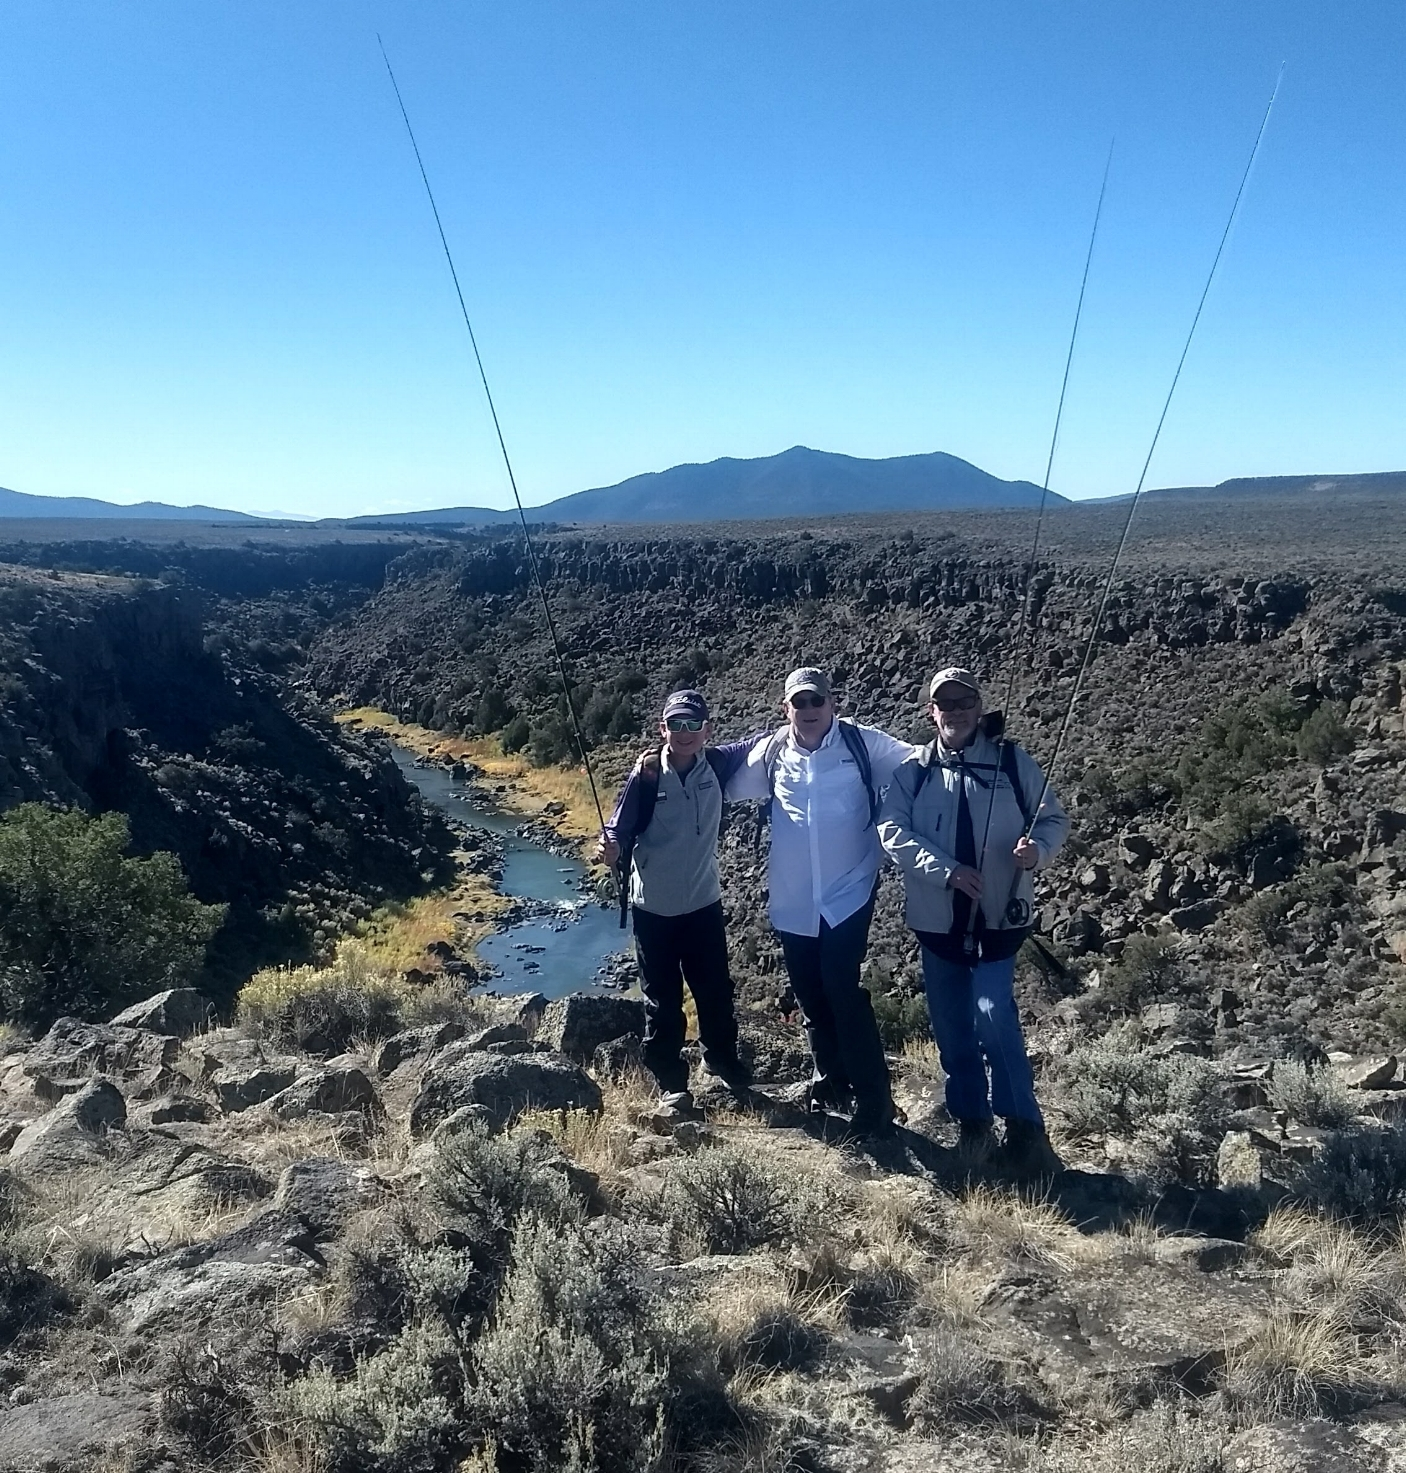 Rio Grande - Ute Mountain with the Hertels